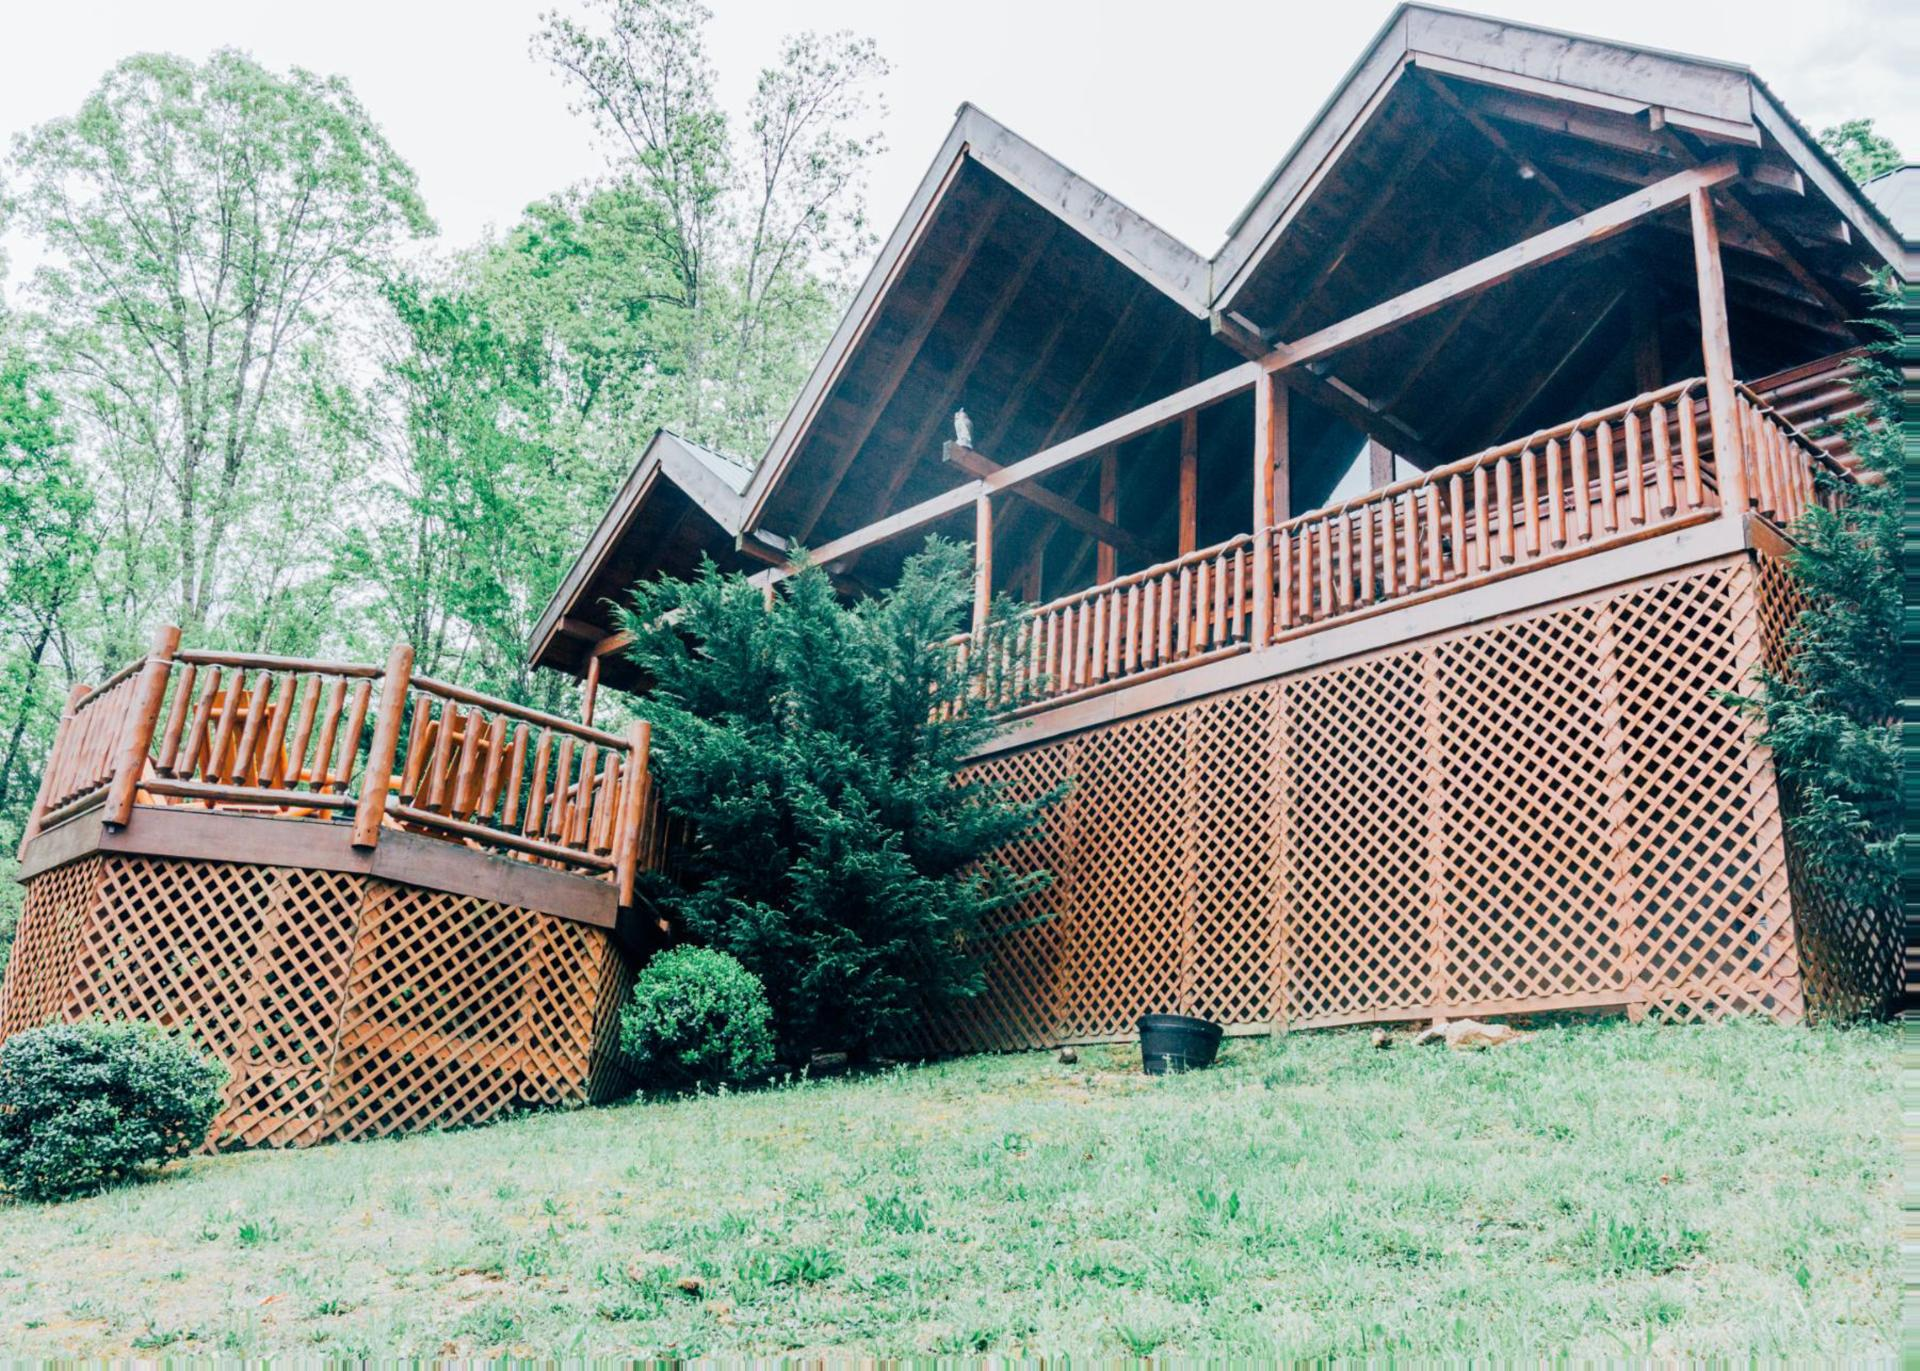 louisiana cabins furniture in log remodel fabulous designing for about home decoration tubs with sale ideas gypsy hot design northumberland